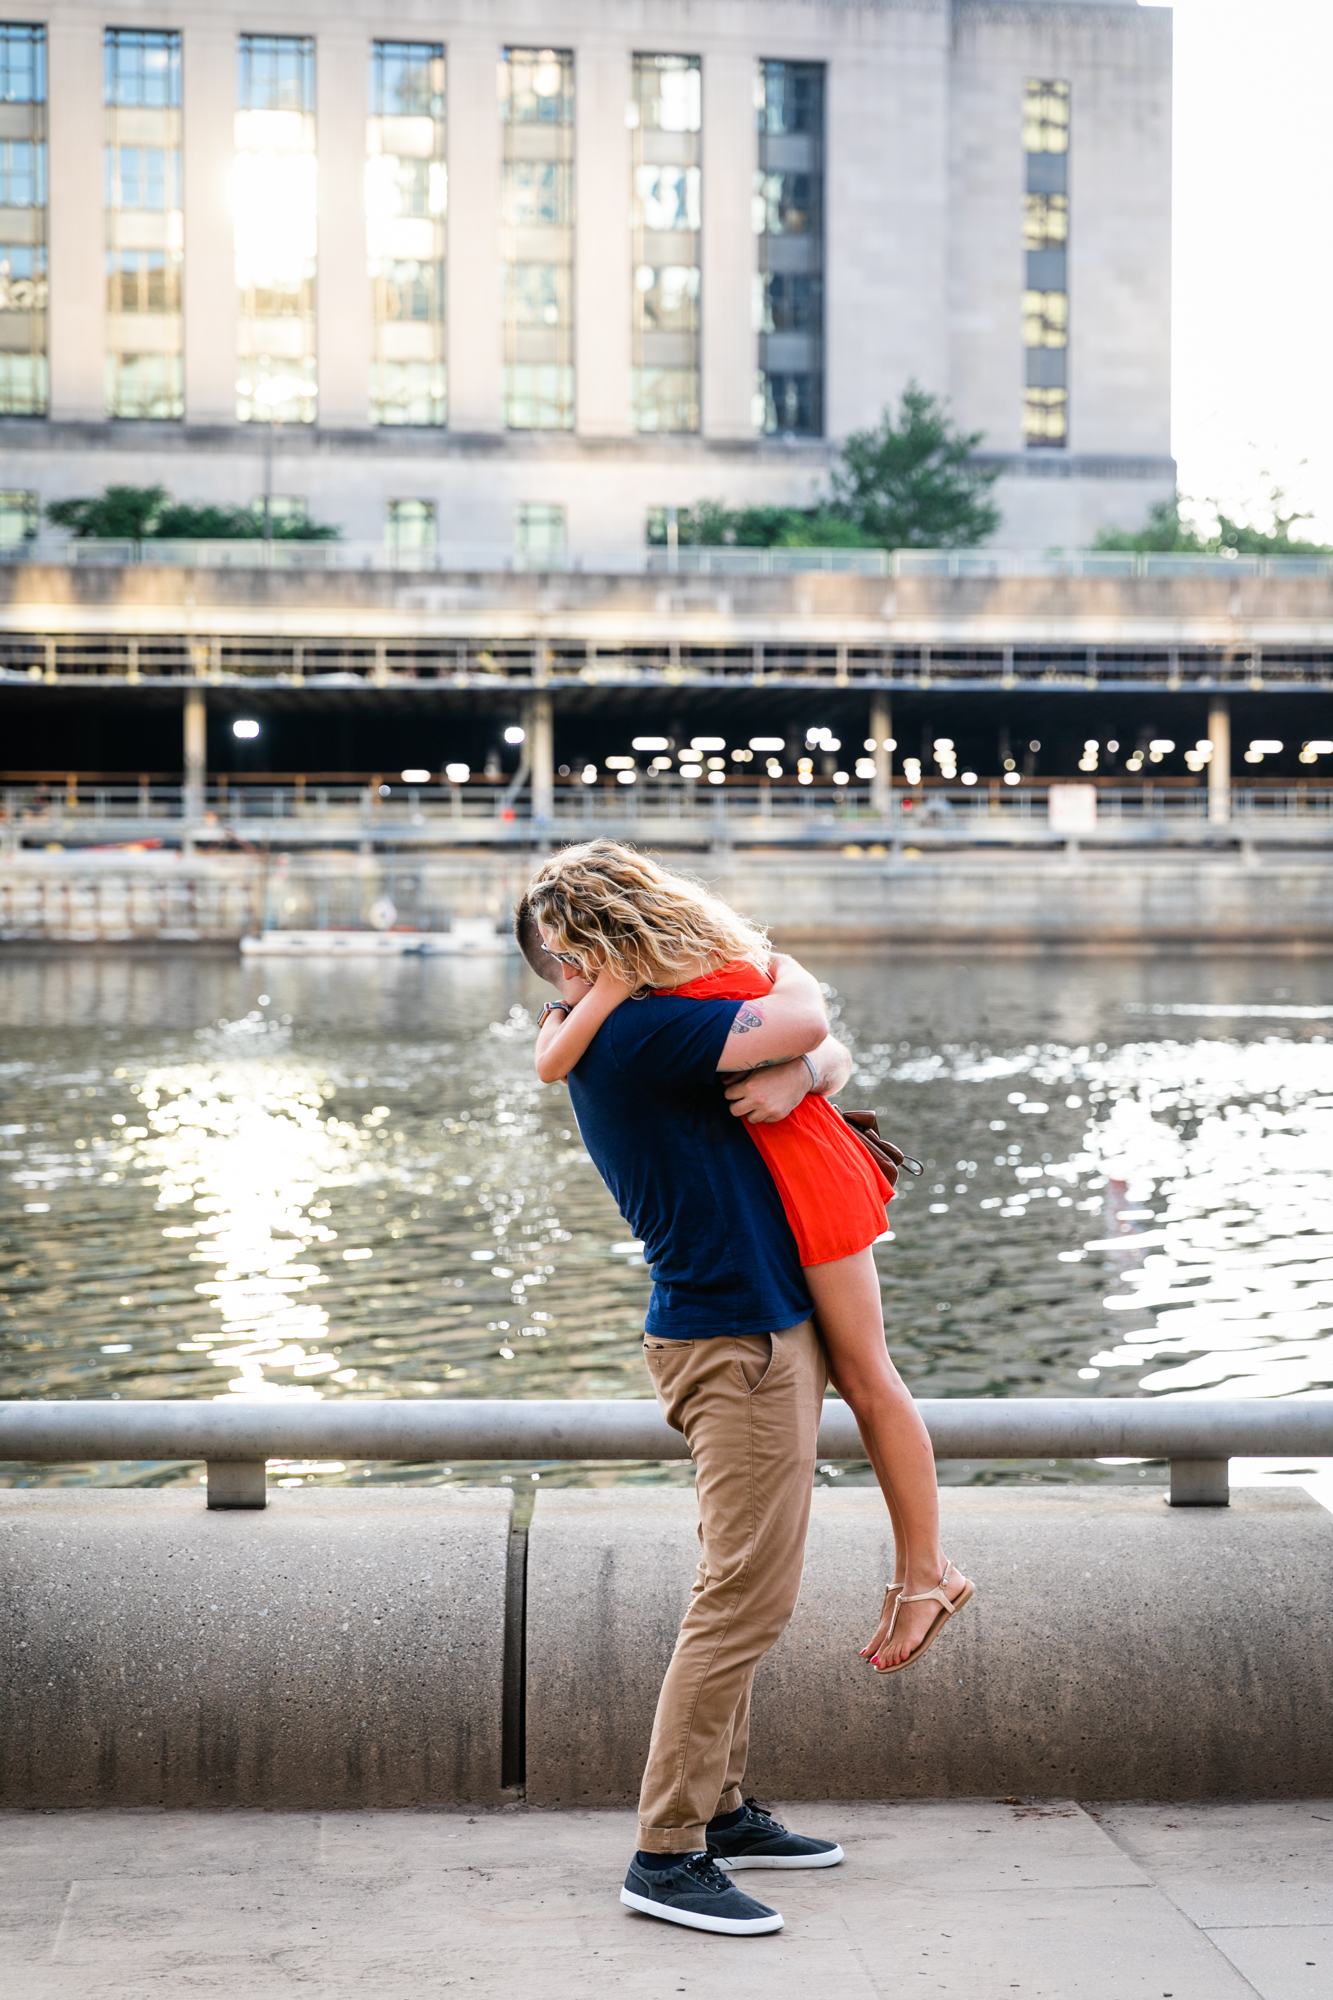 Engagament Photography Philadelphia - LoveStruck Pictures - Schuylkill River Trail-004.jpg